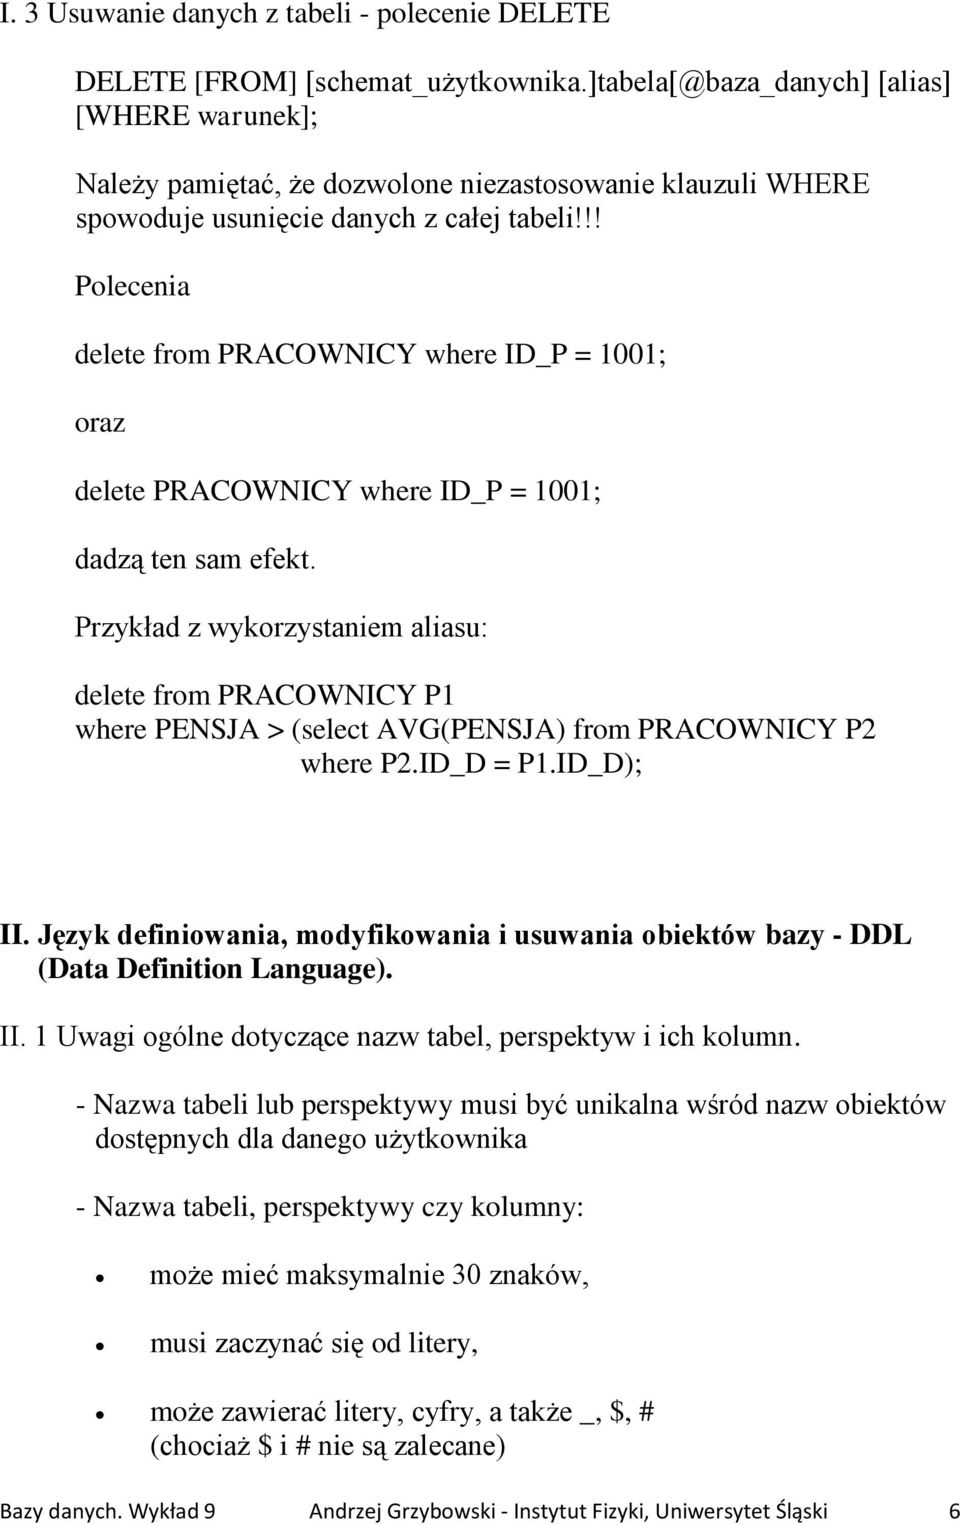 !! Polecenia delete from PRACOWNICY where ID_P = 1001; oraz delete PRACOWNICY where ID_P = 1001; dadzą ten sam efekt.